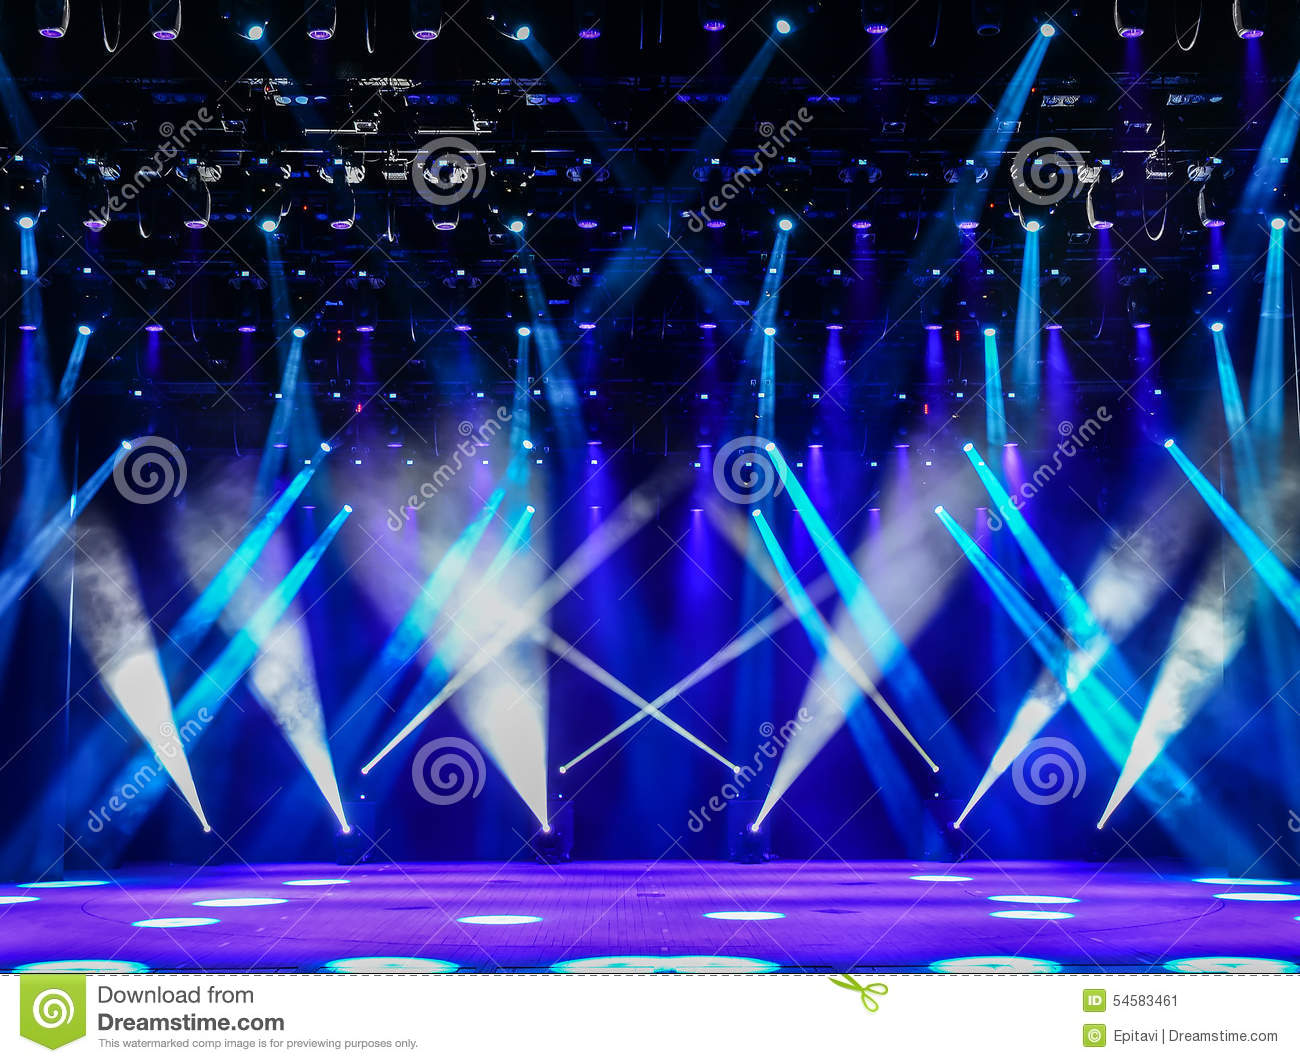 Illuminated empty theater stage with fog and blue rays of light.